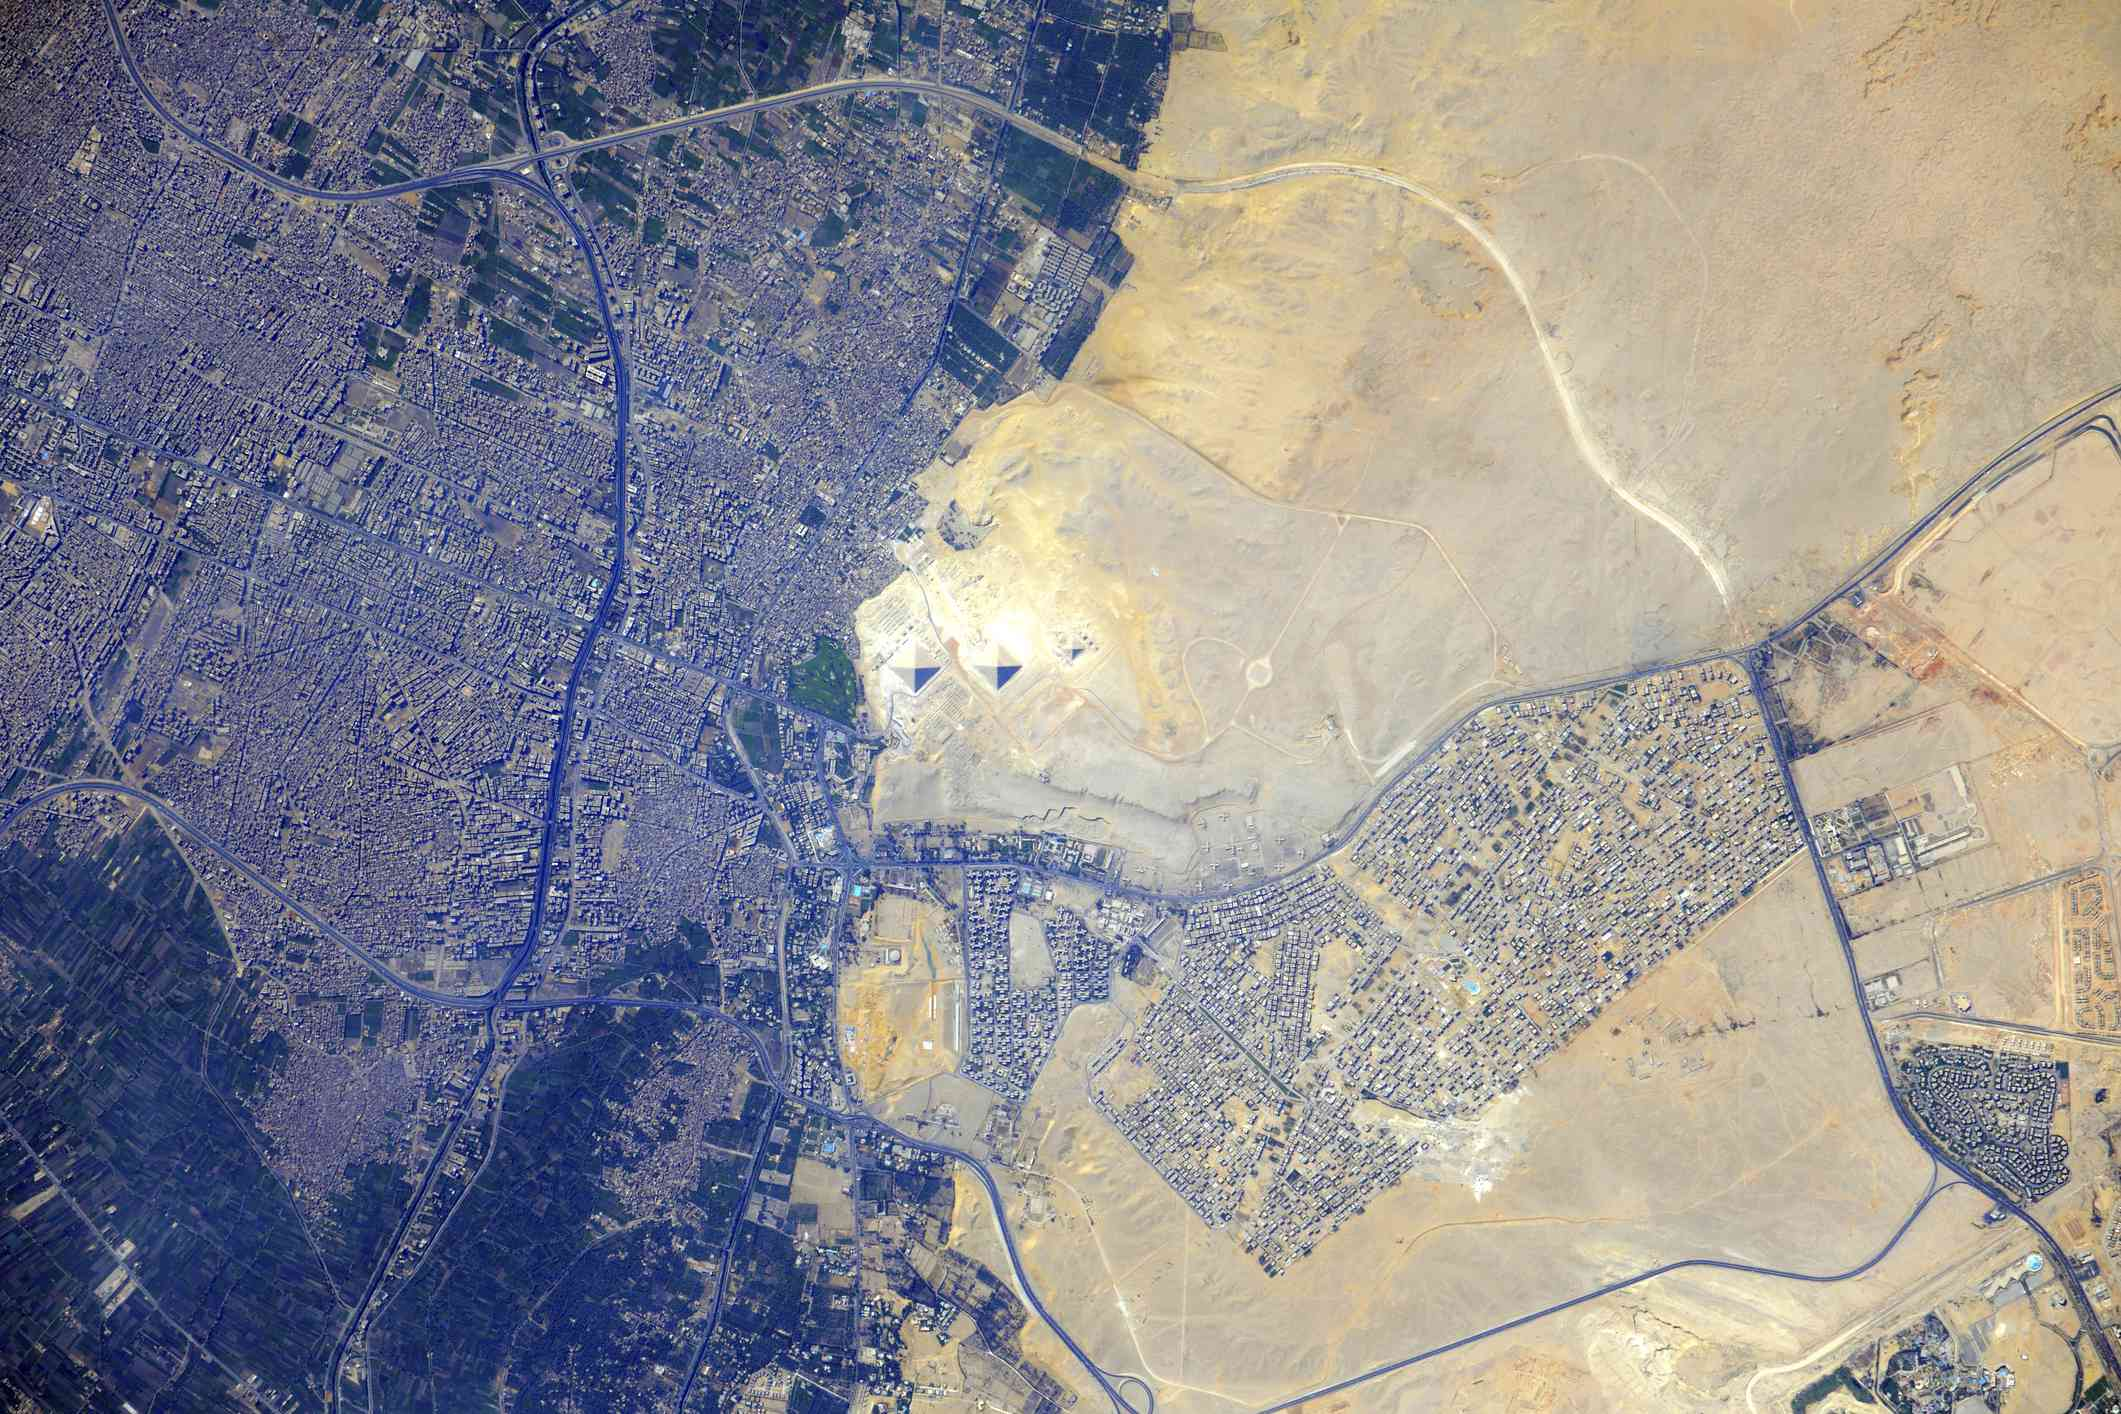 View from space of the Pyramids at Giza